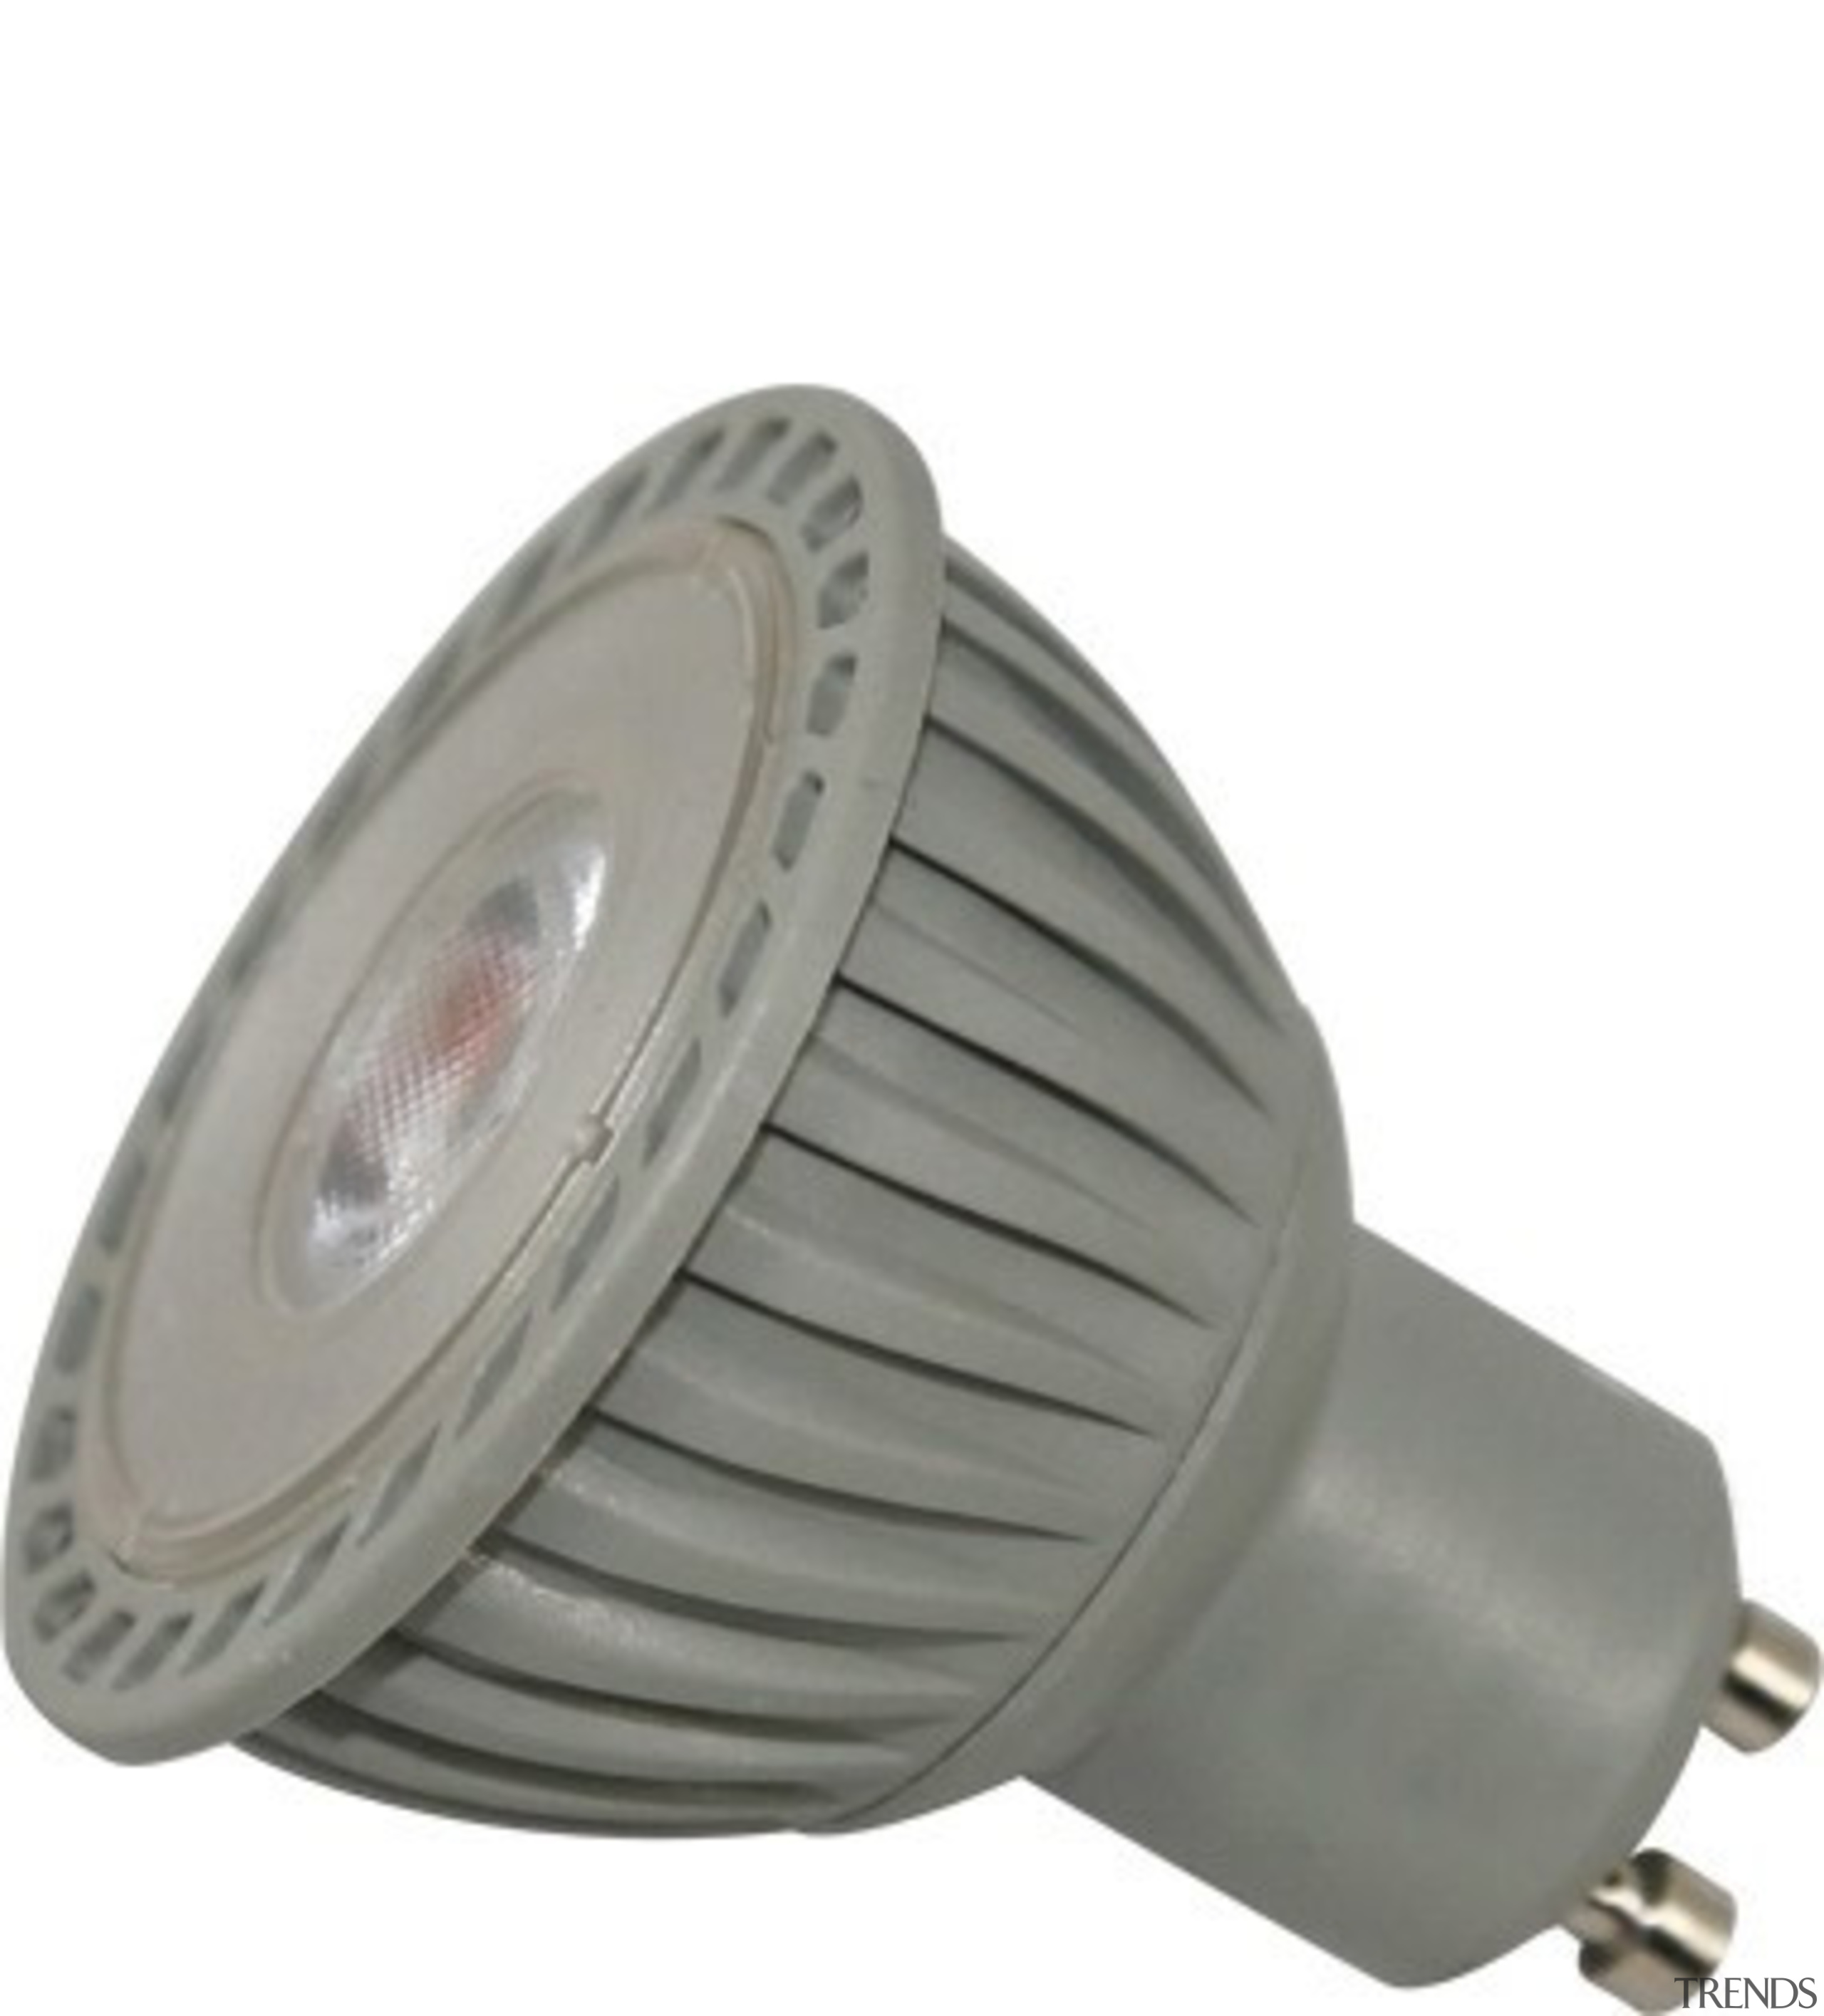 FeaturesSame size as a 240V GU10 Halogen Lamp white, gray